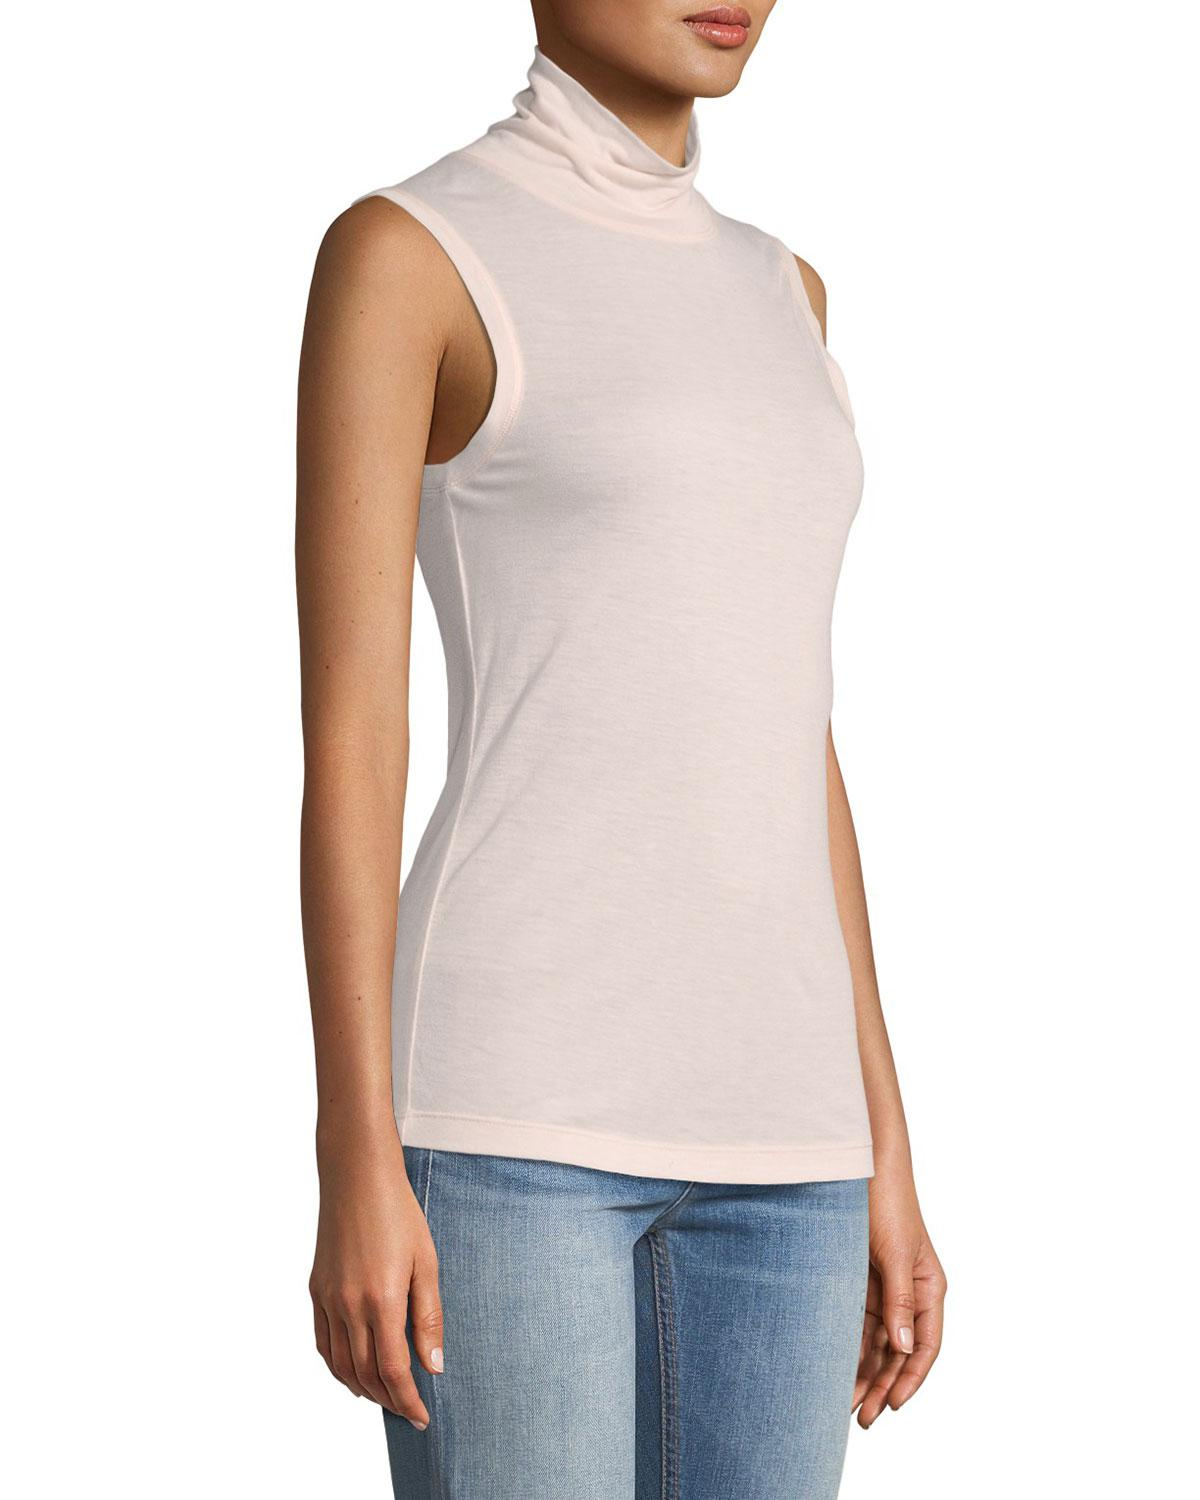 b20eb542dcafb Rag   Bone - Pink Briony Sleeveless Turtleneck Top - Lyst. View fullscreen